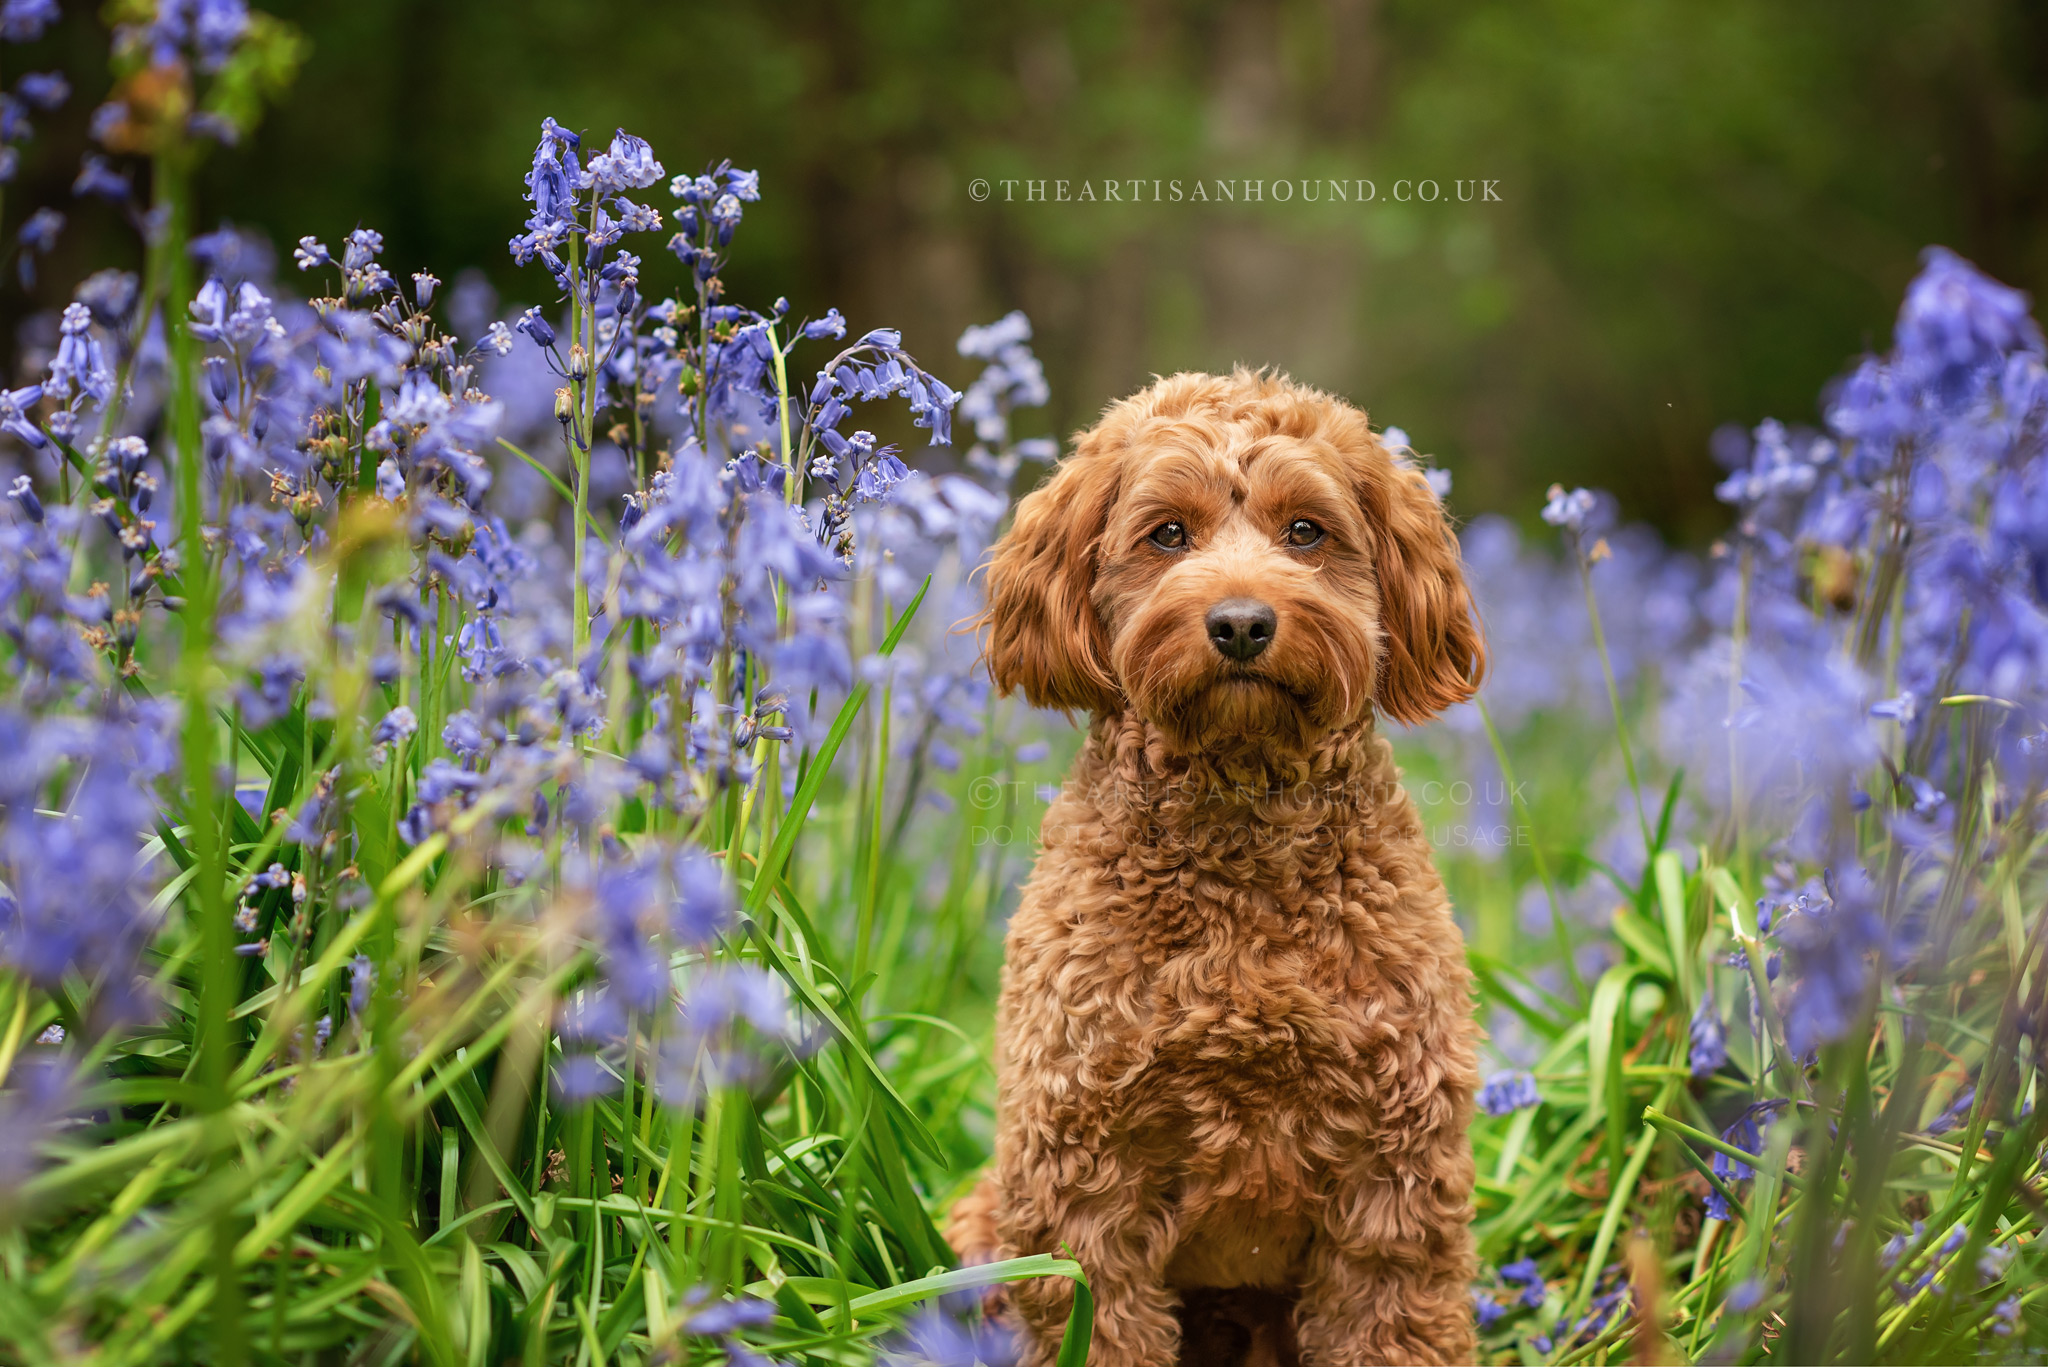 Cockapoo portrait photo in bluebells